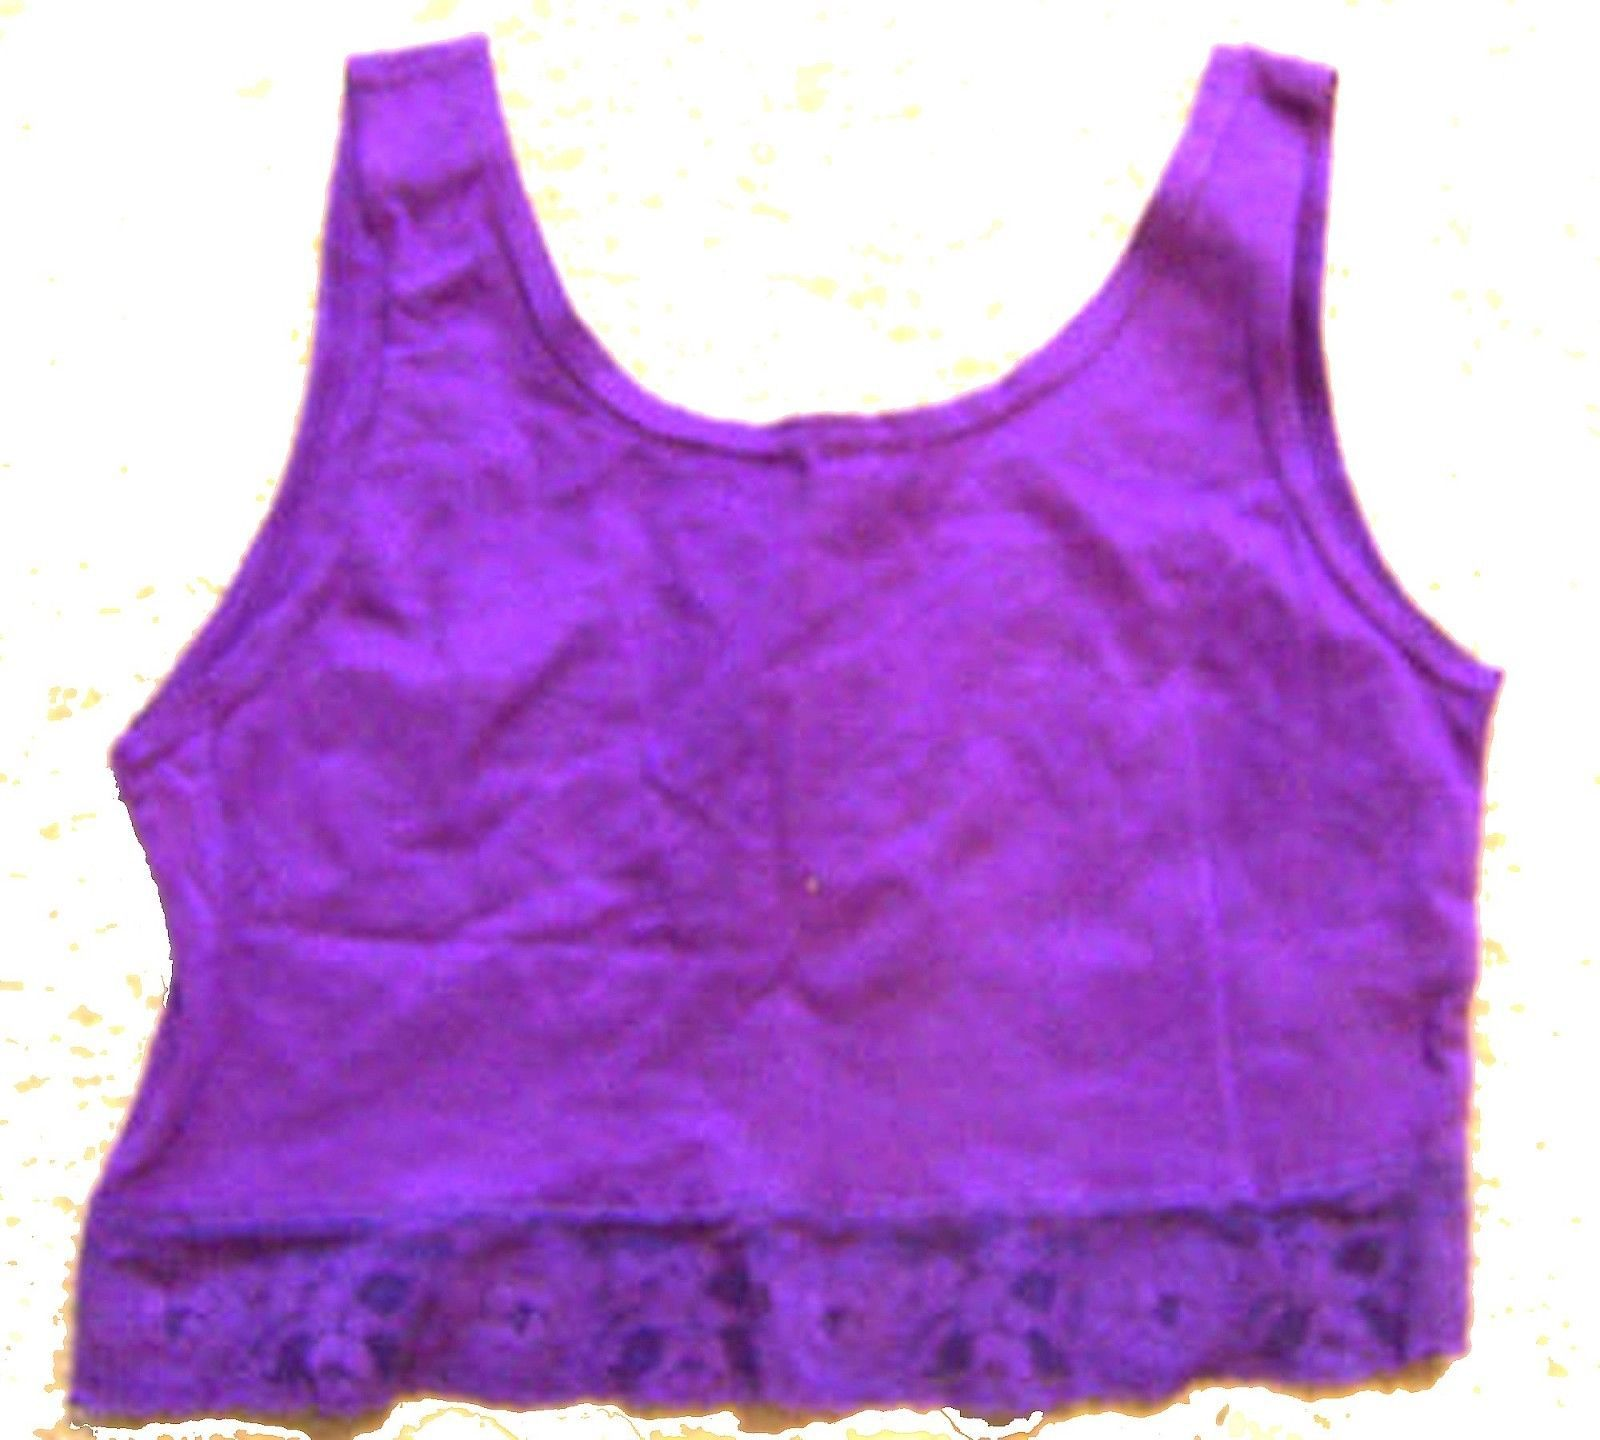 Sz M/L - One World Low Back Sleeveless Crop Tops in Blue or Purple